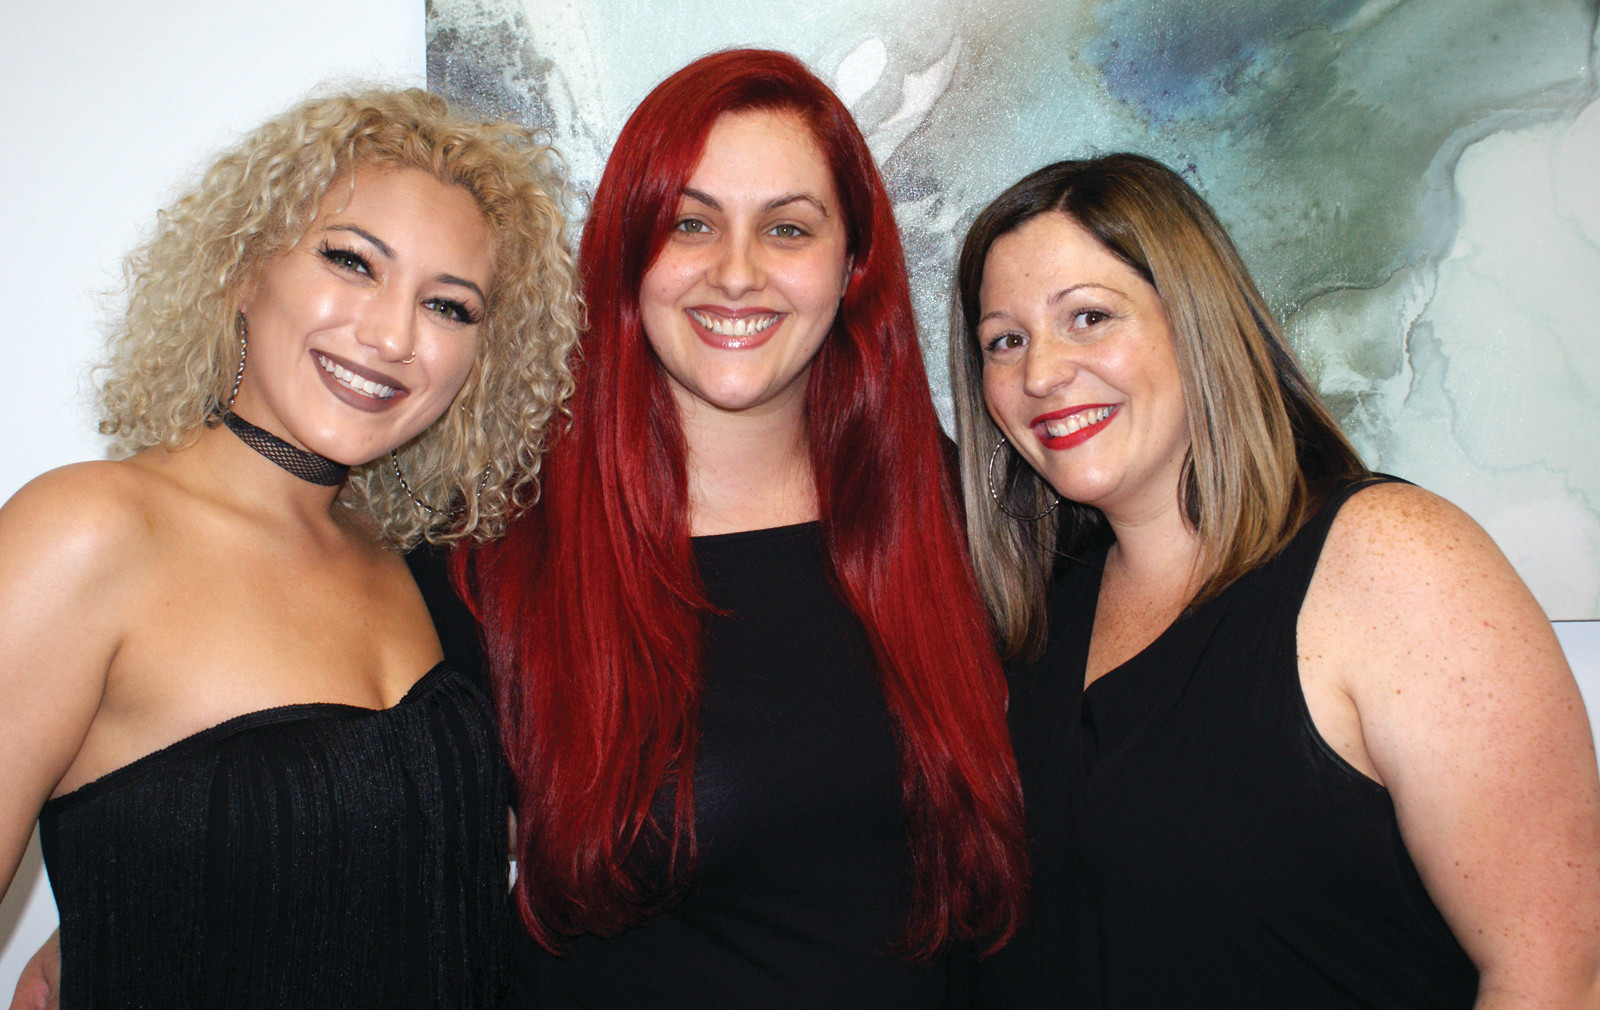 Pictured in the middle is owner Samantha Frew who is pictured with hairstylist Tess Cabral and Nail Tech Nicole Bucci.